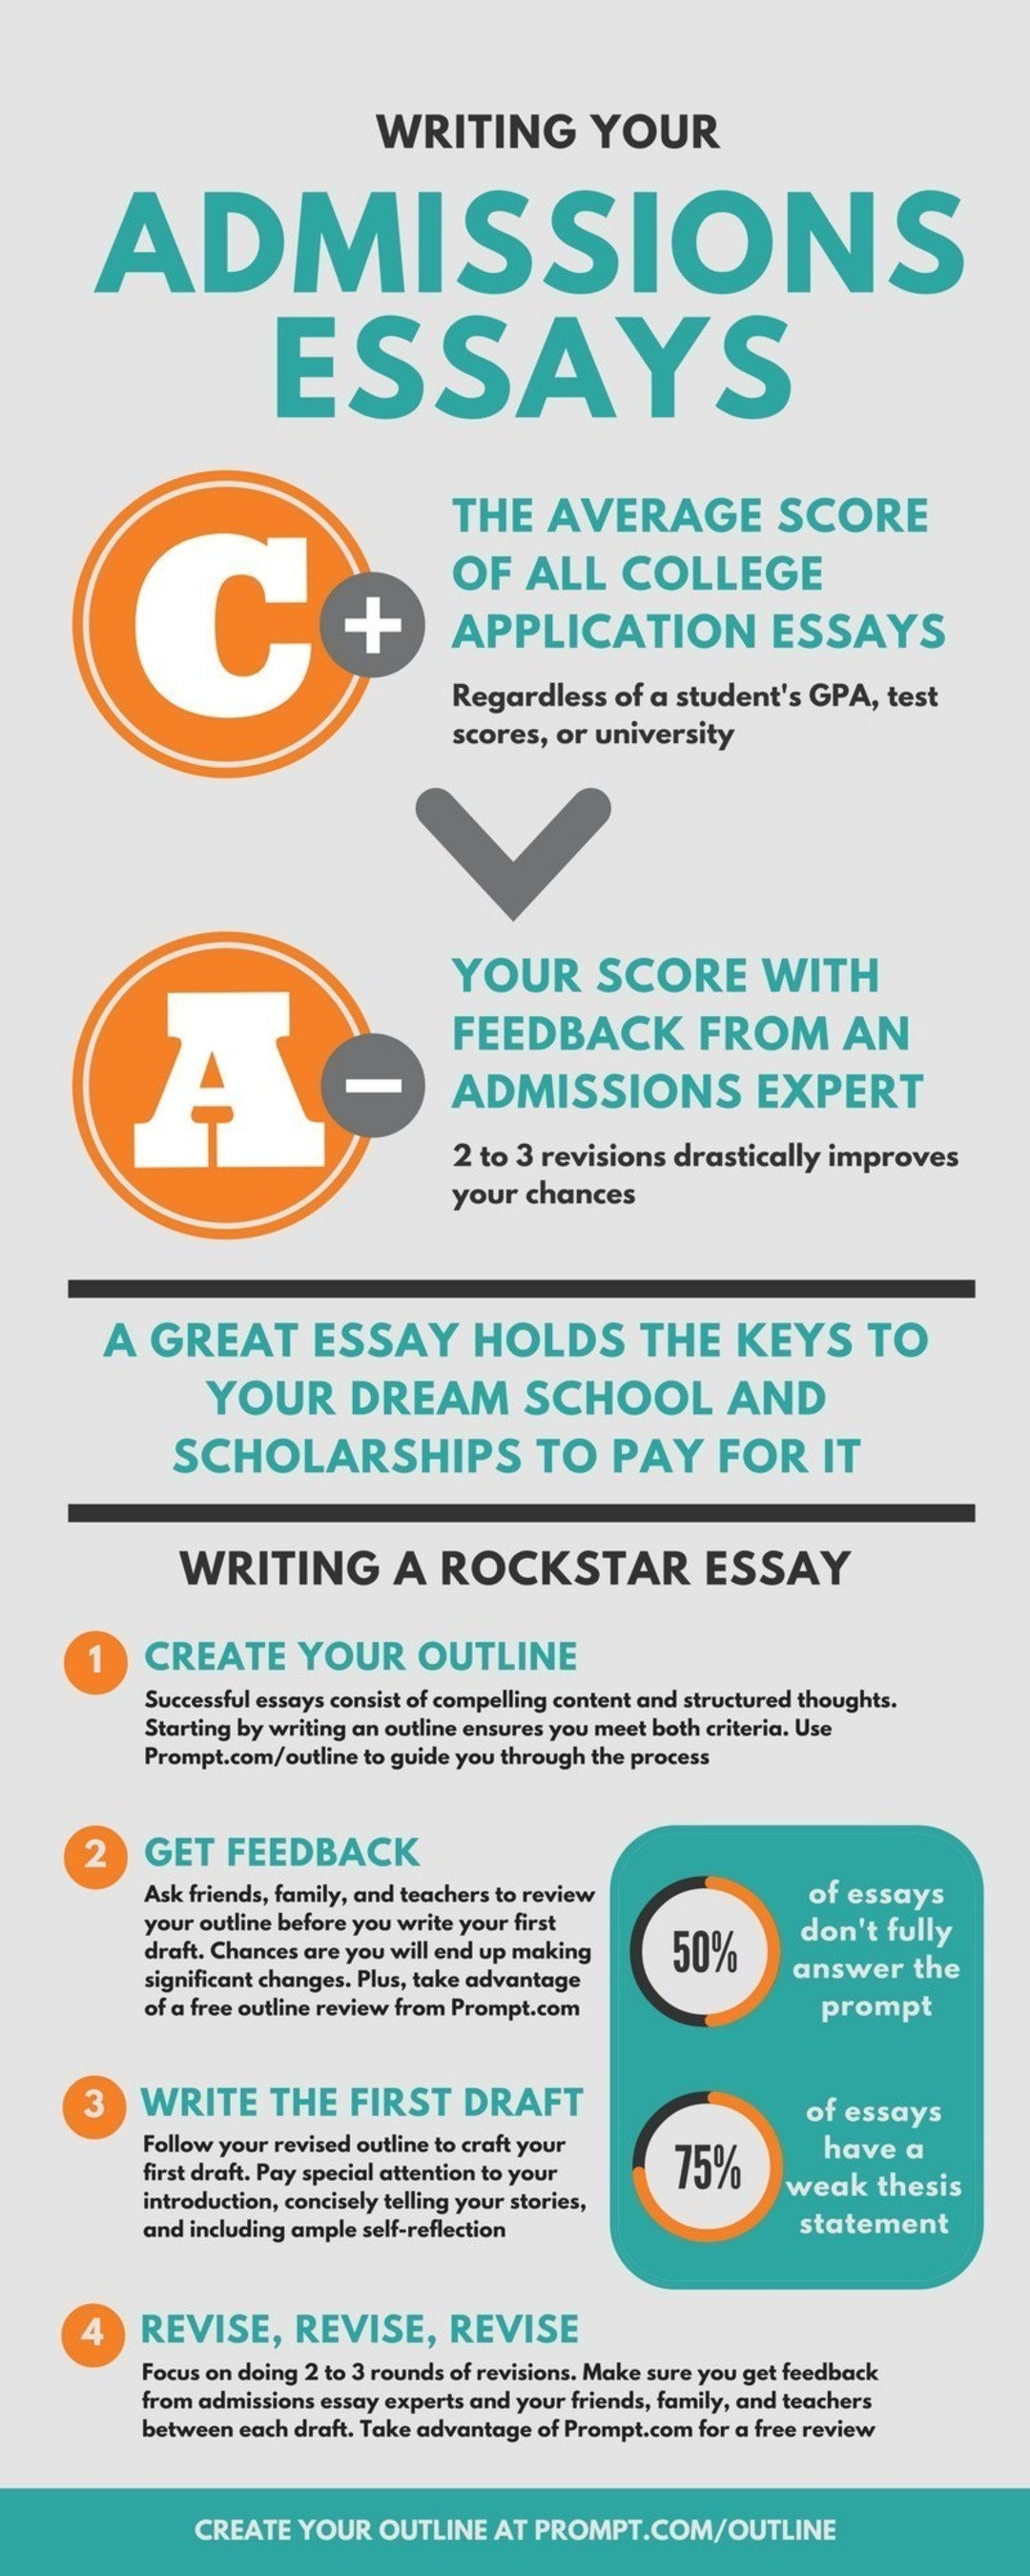 Argumentative Essay Proposal  1984 Essay Thesis also How Do I Write A Thesis Statement For An Essay Promptcom Finds The Average College Application Essay Is A C Essay Of Newspaper